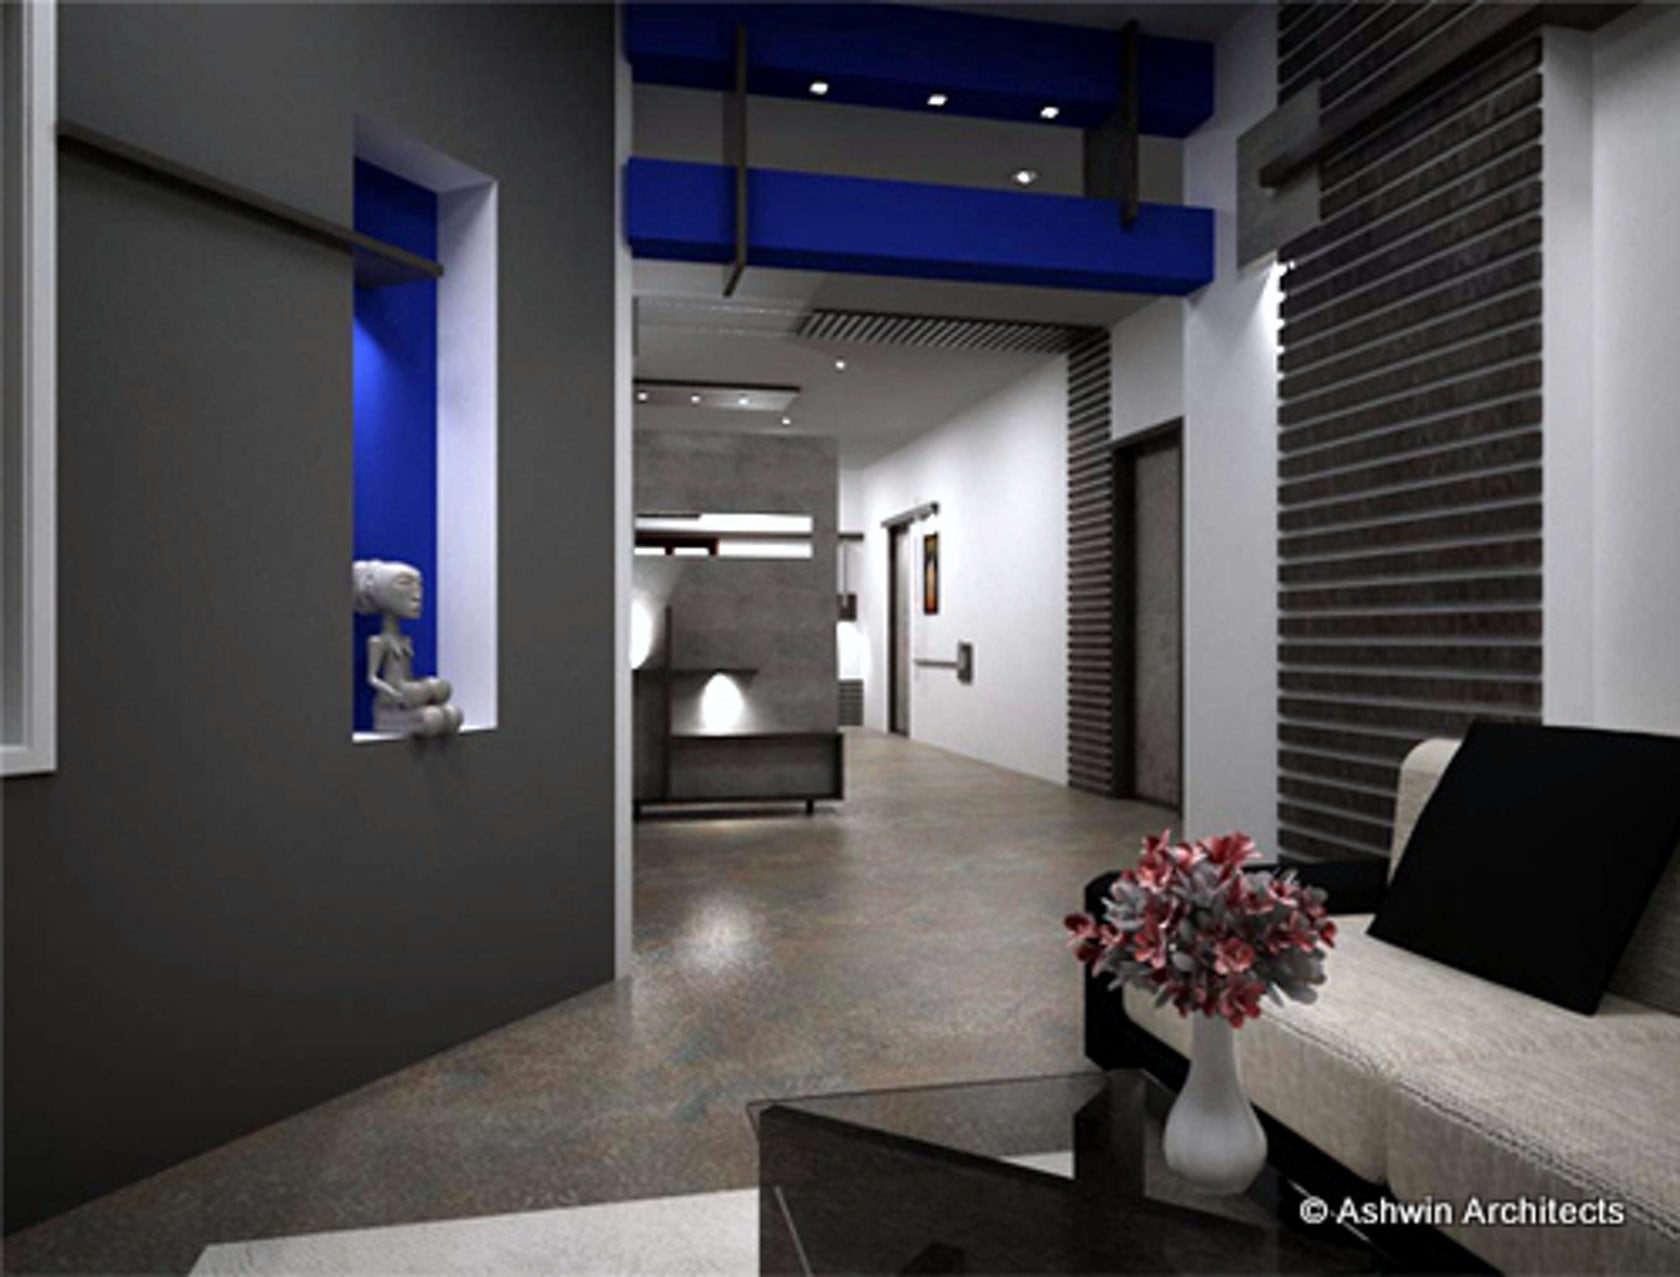 Udai s 3bhk apartment interior designs in bangalore for Interior designs in bangalore